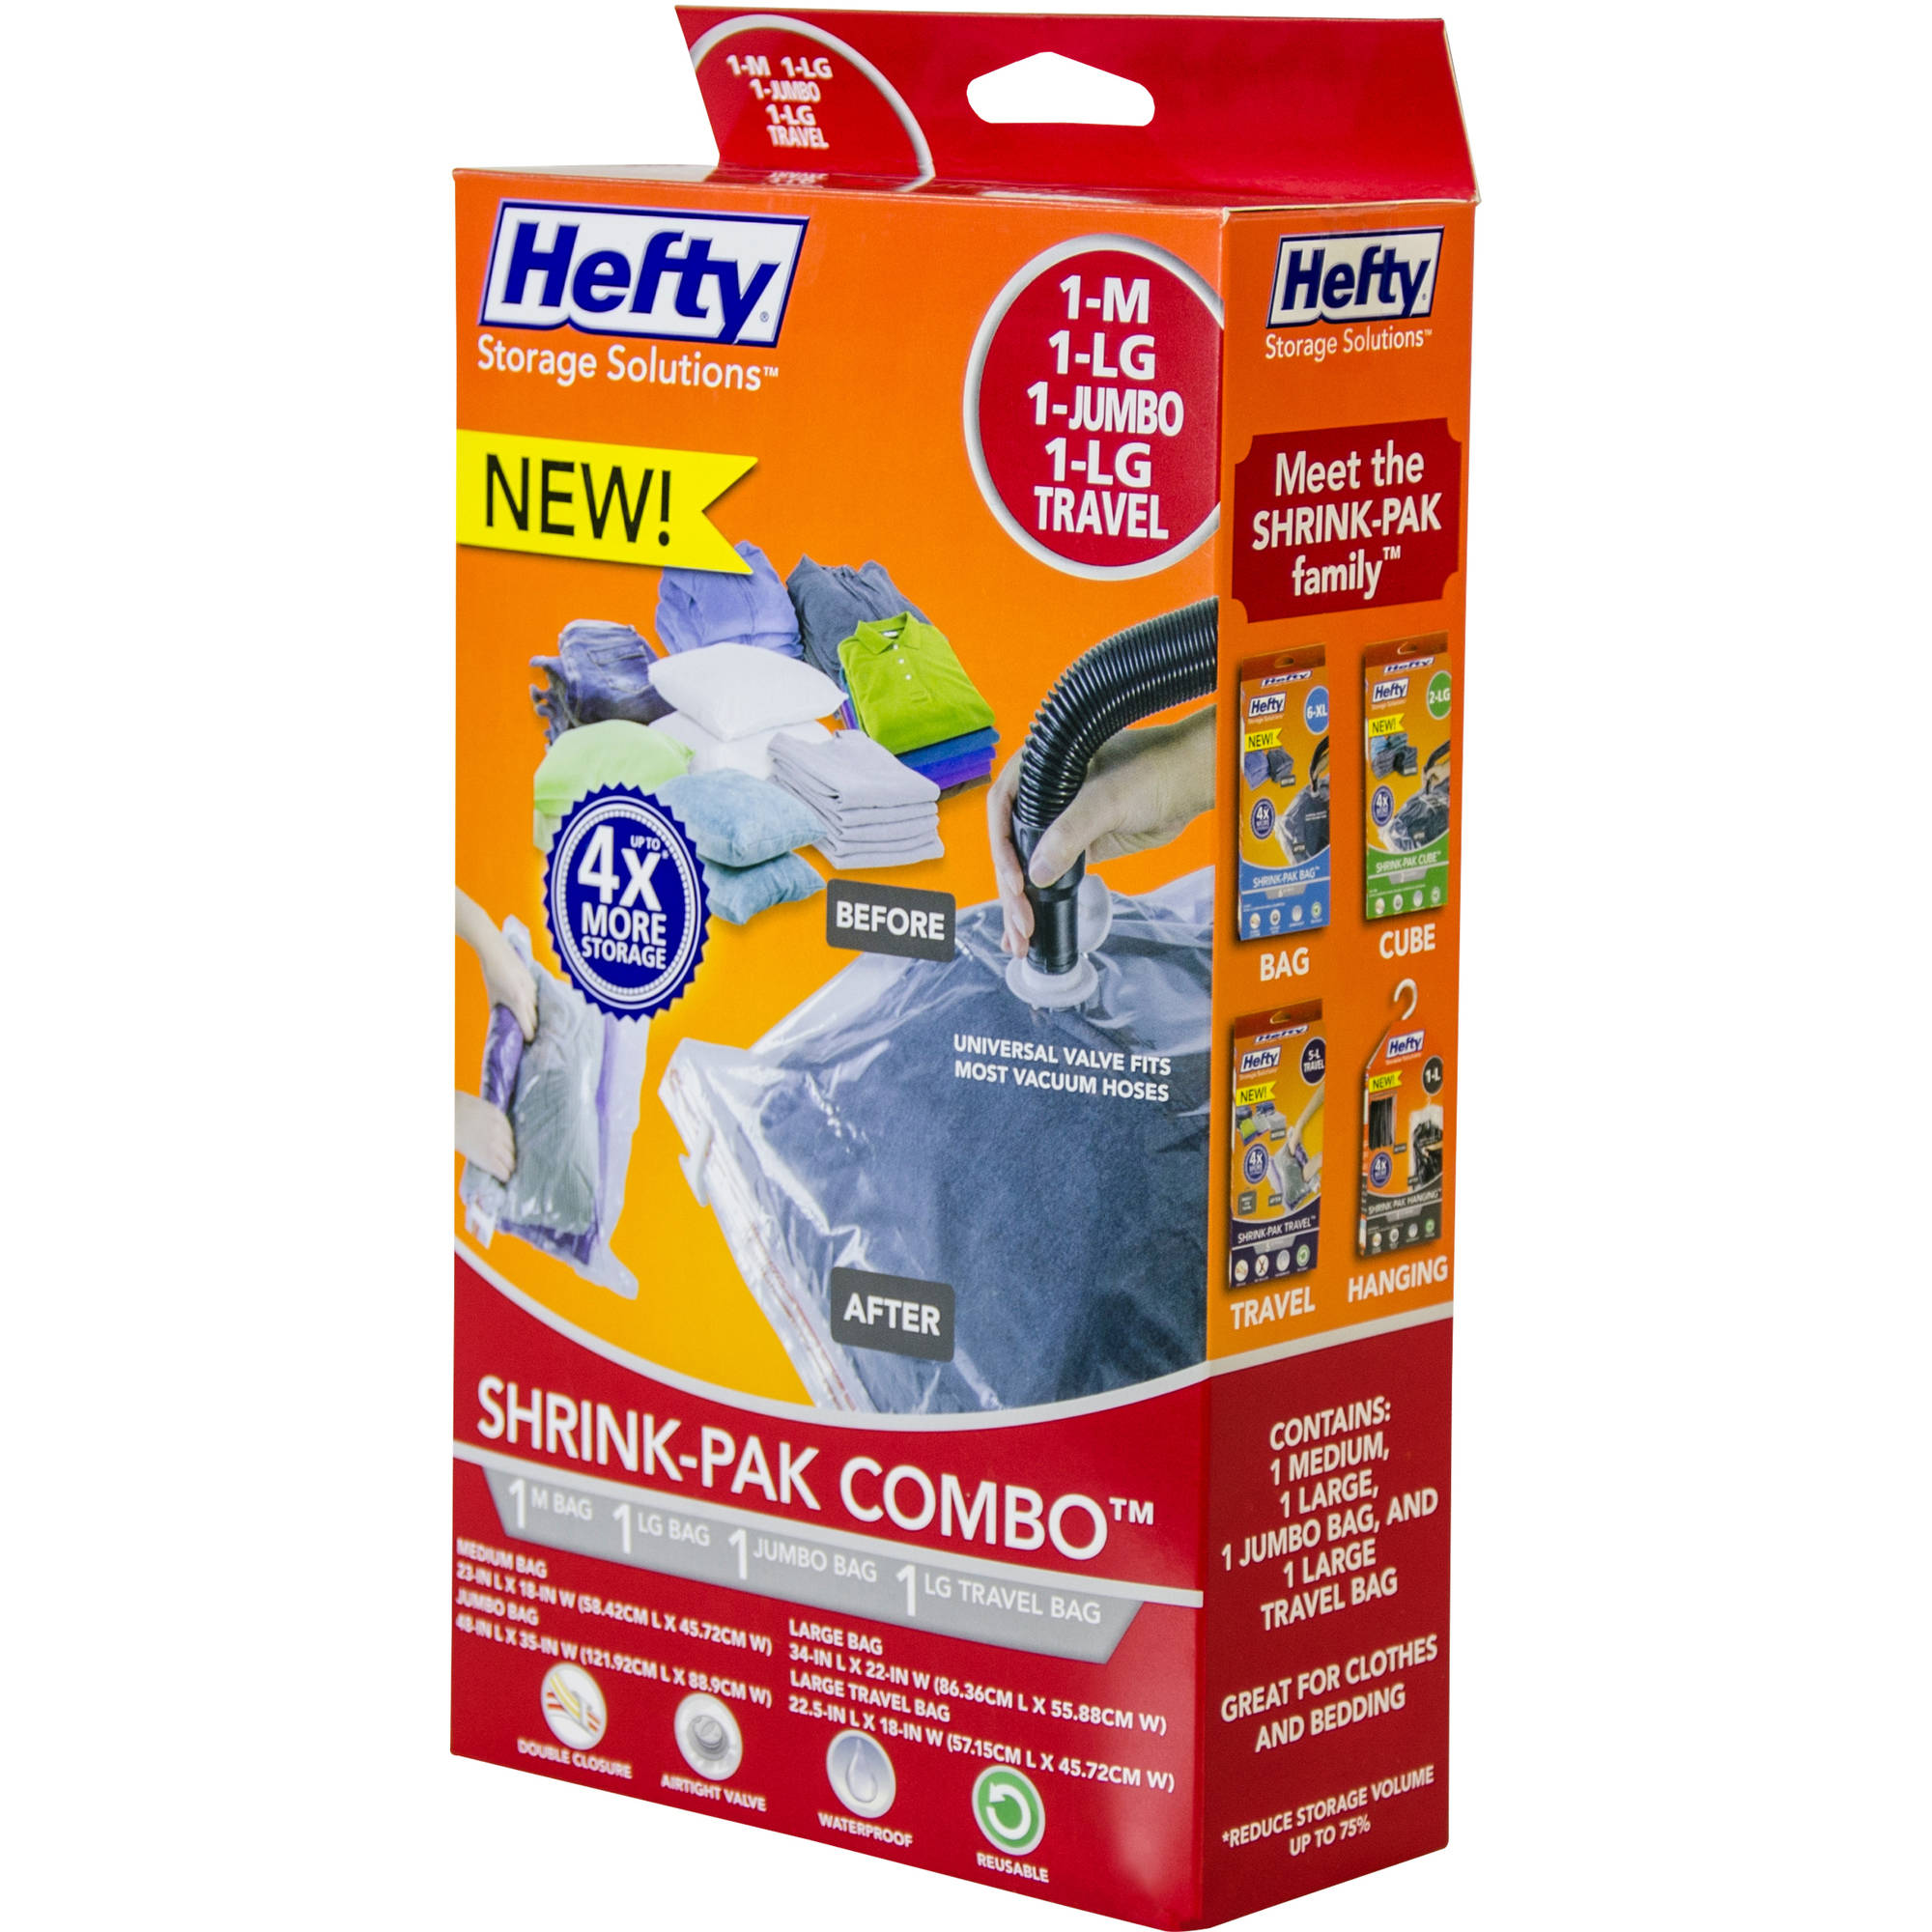 Hefty Shrink-Pak Vacuum Seal Bags, 1 Medium, 1 Large and 1 Jumbo Bags and 1 Large Travel Bag